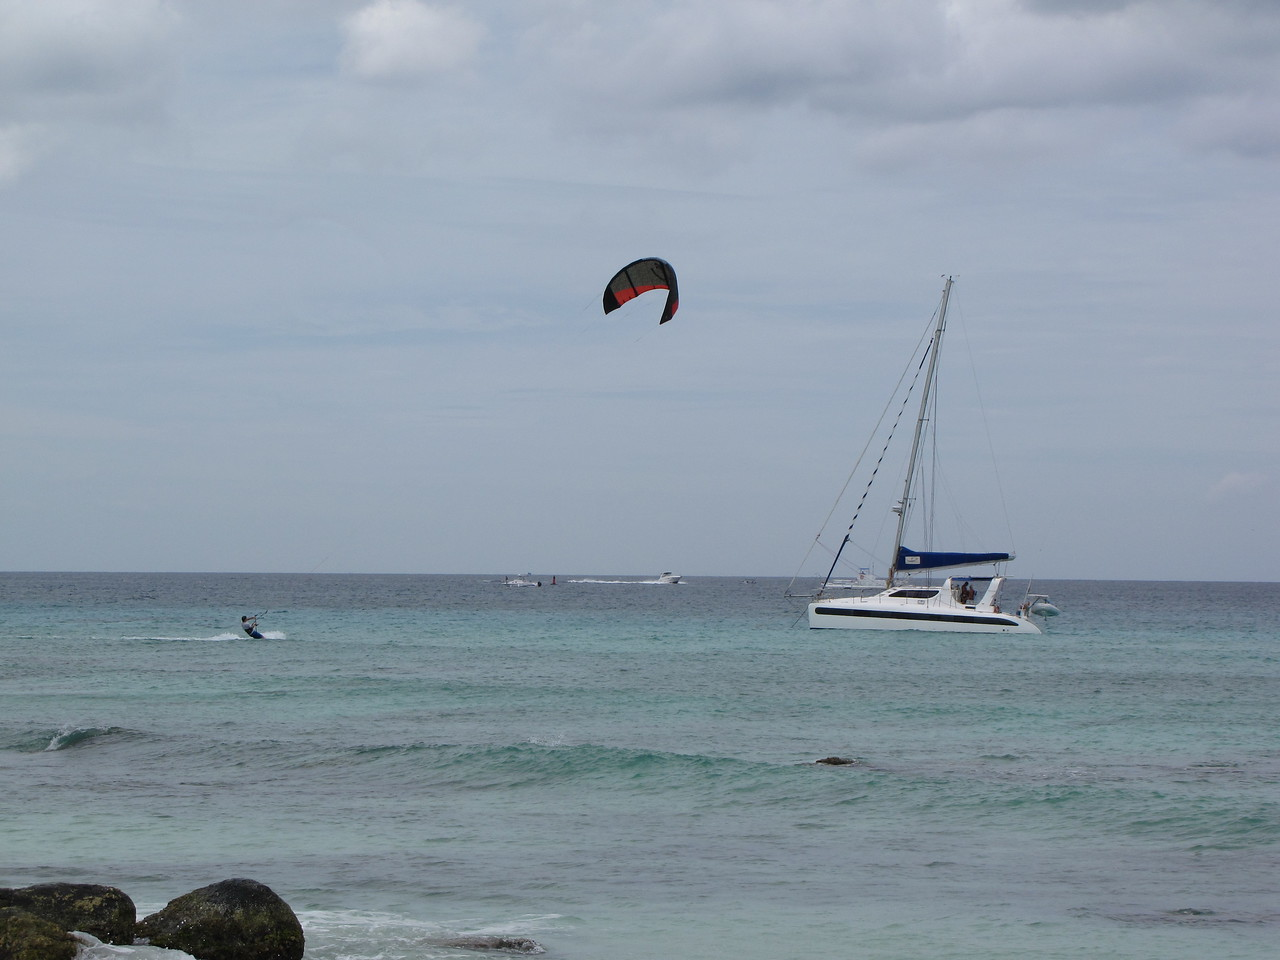 Kite boarding and catamarans.